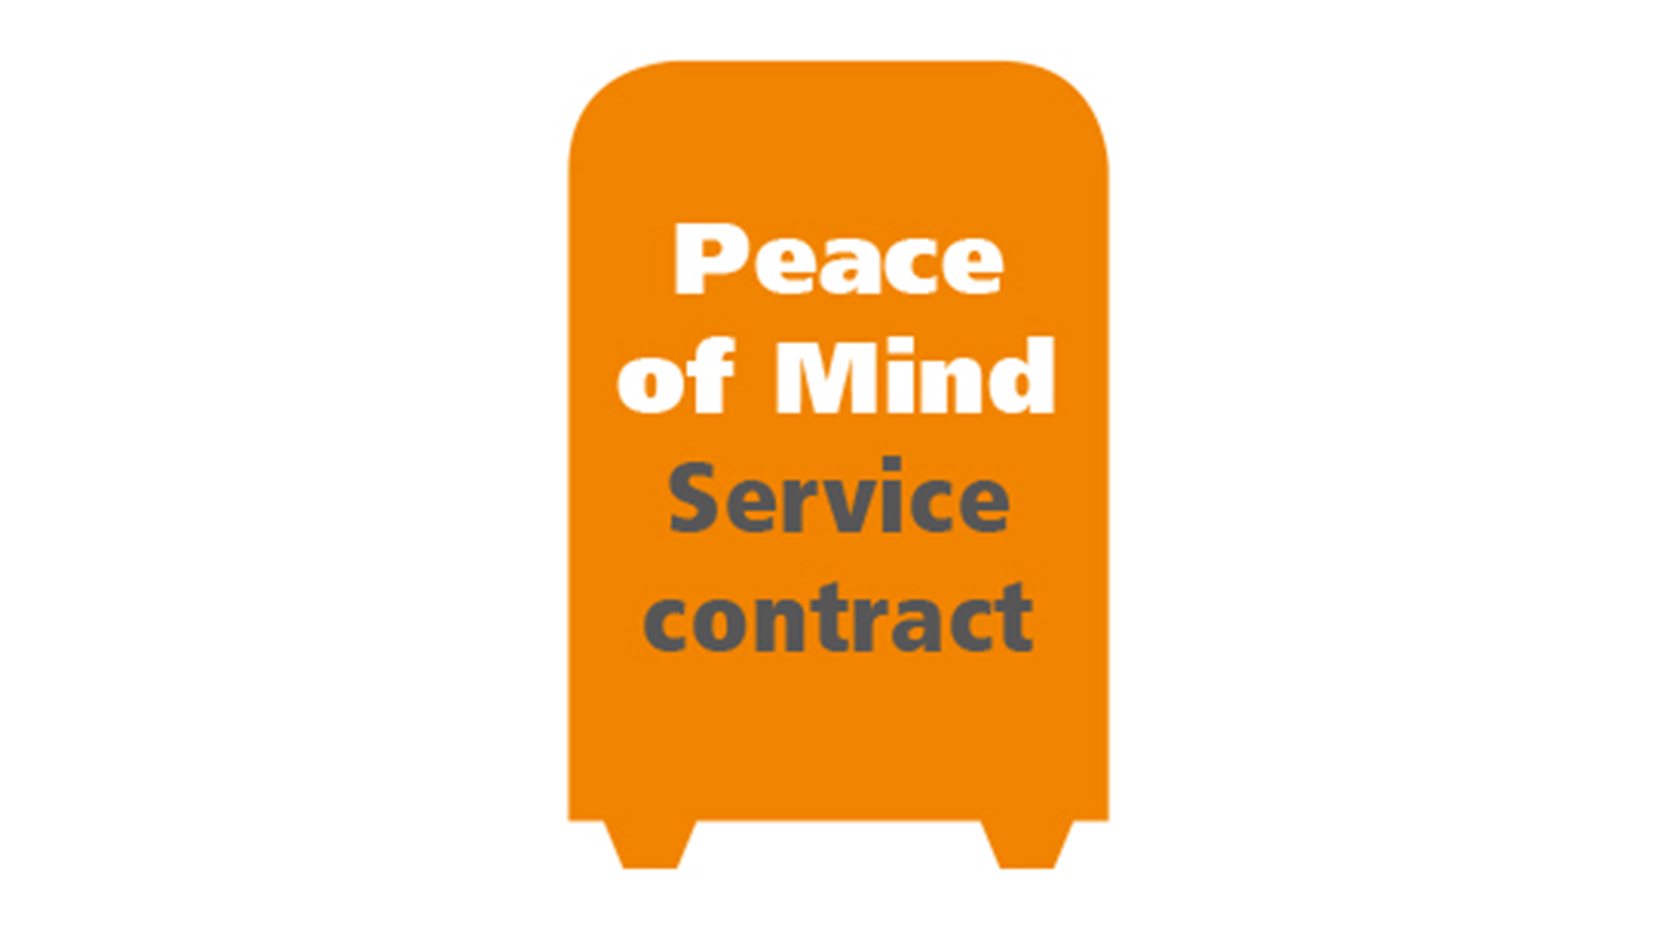 Peace of mind service contract